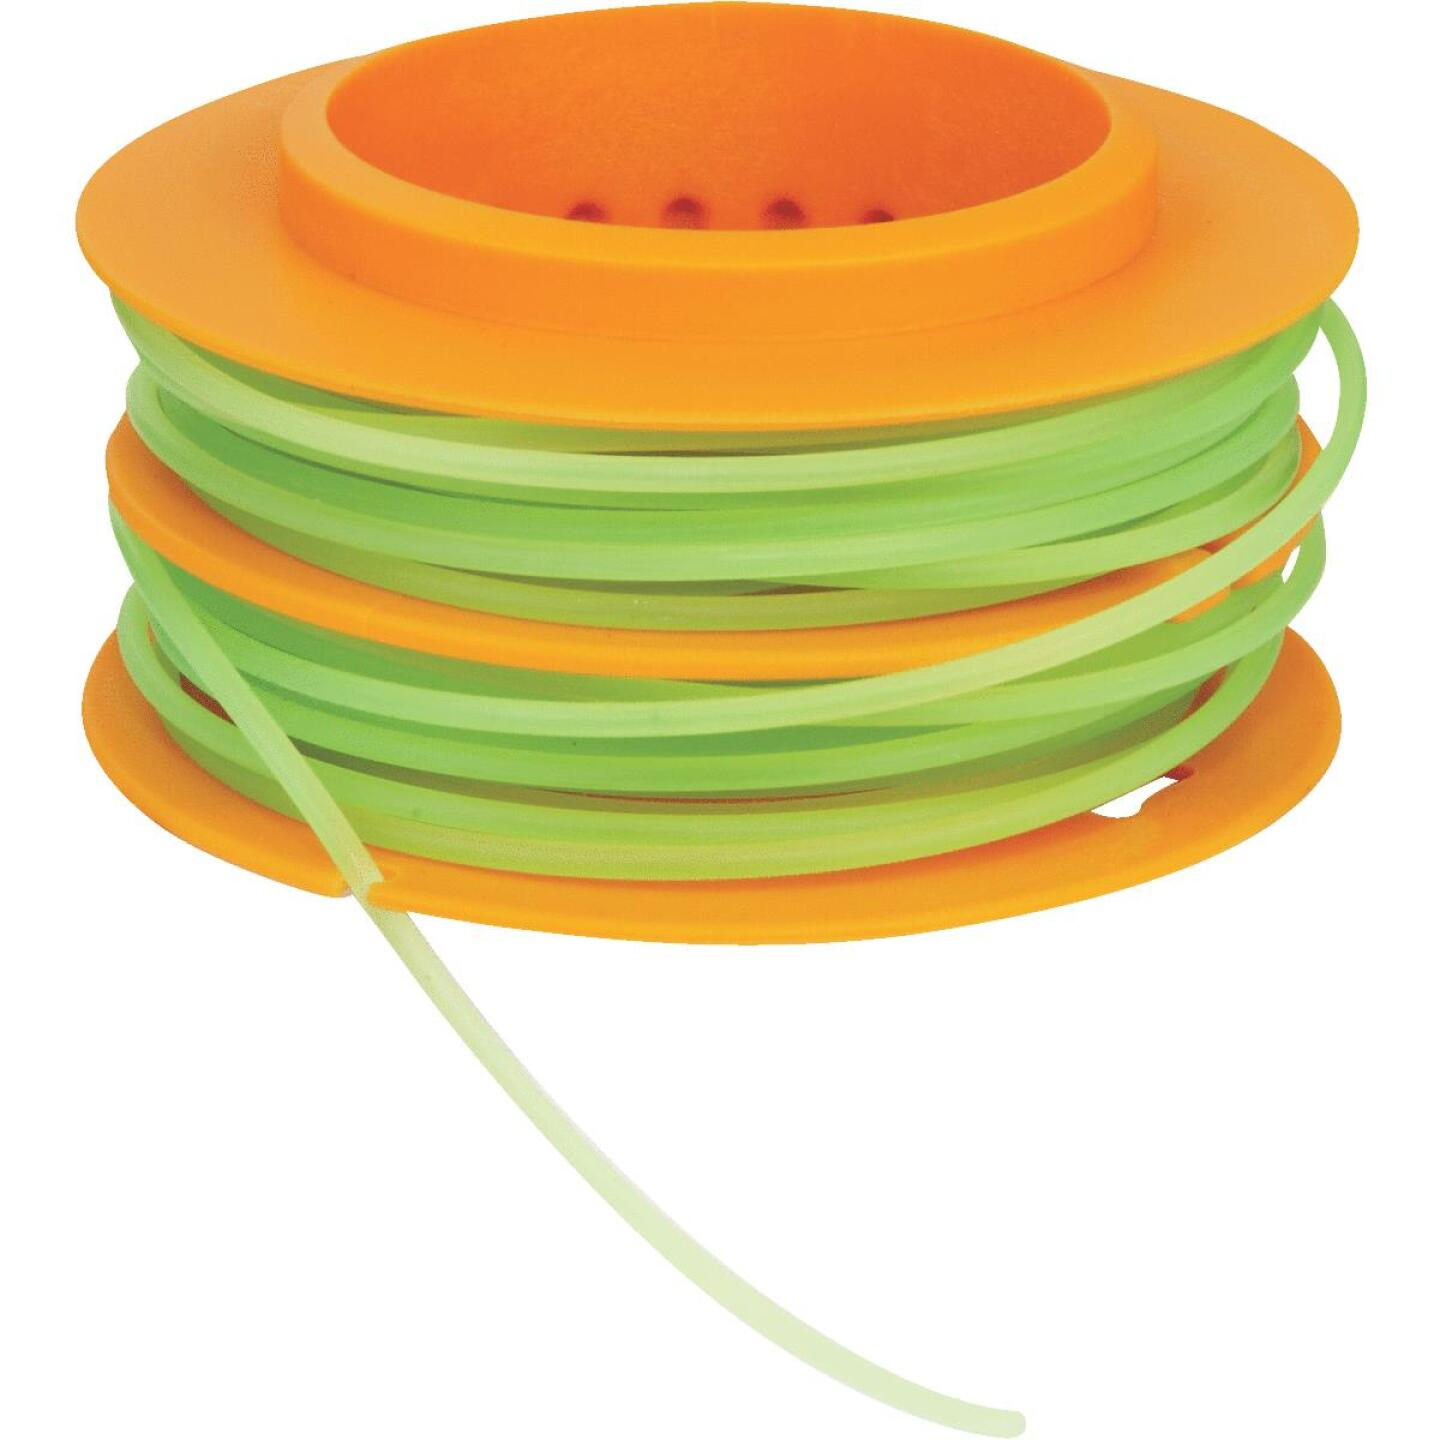 Poulan Pro Tap N Go 0.080 In. x 25 Ft. Dual Trimmer Line Spool Image 3